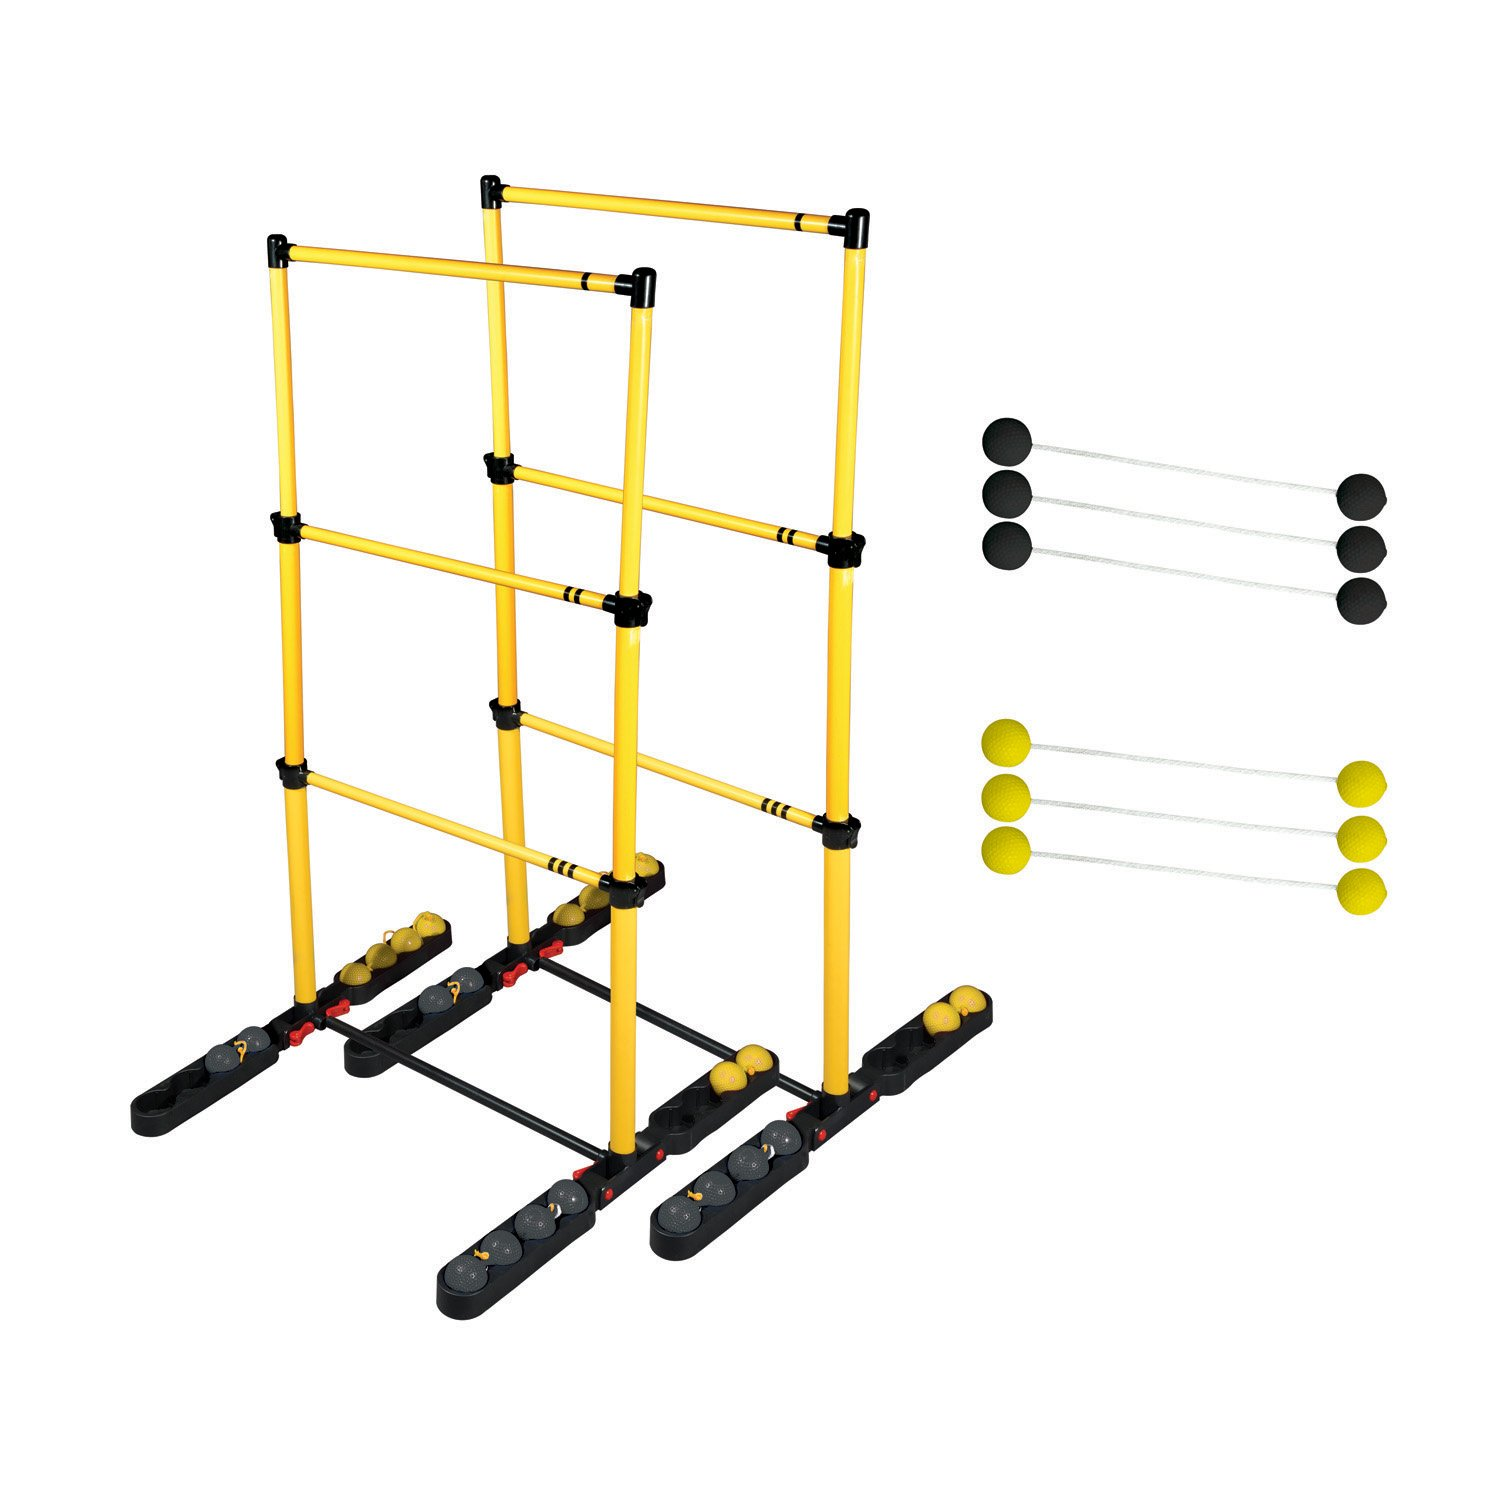 Amazon.com : Franklin Sports Foldable Ladder Ball : General Sporting ...